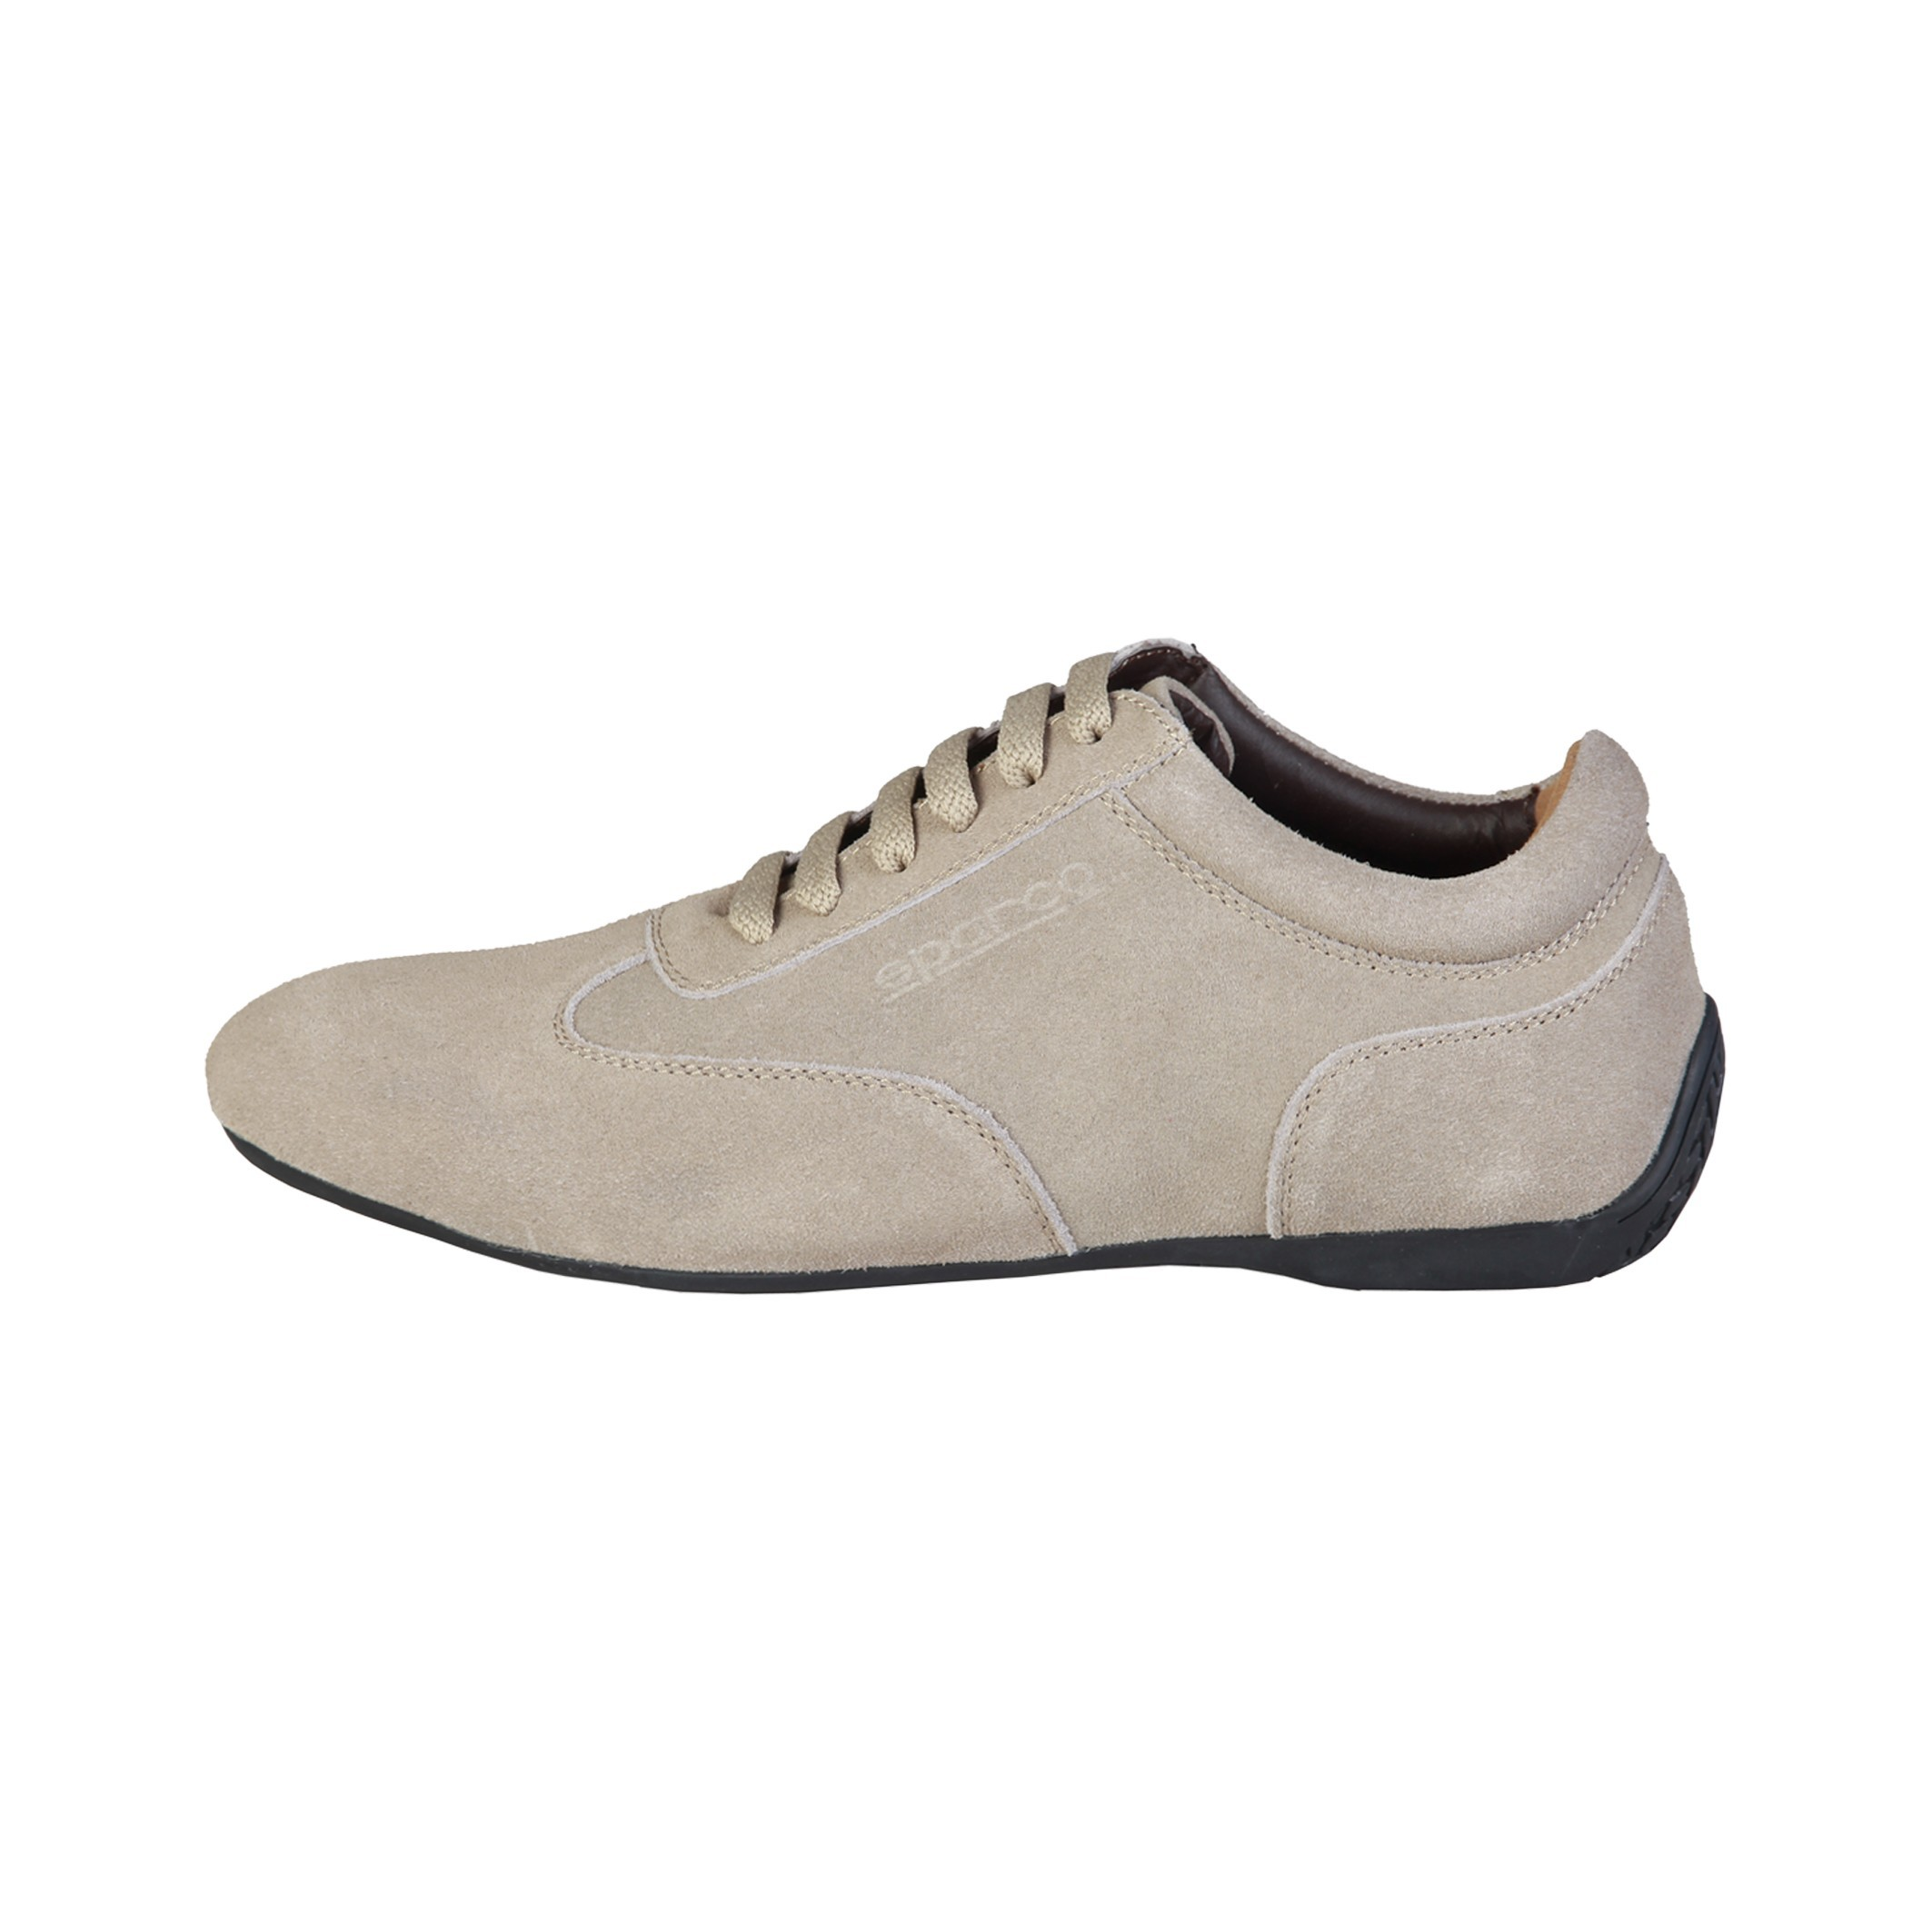 Baskets Homme SPARCO IMOLA-TAUPE... azy6hdj